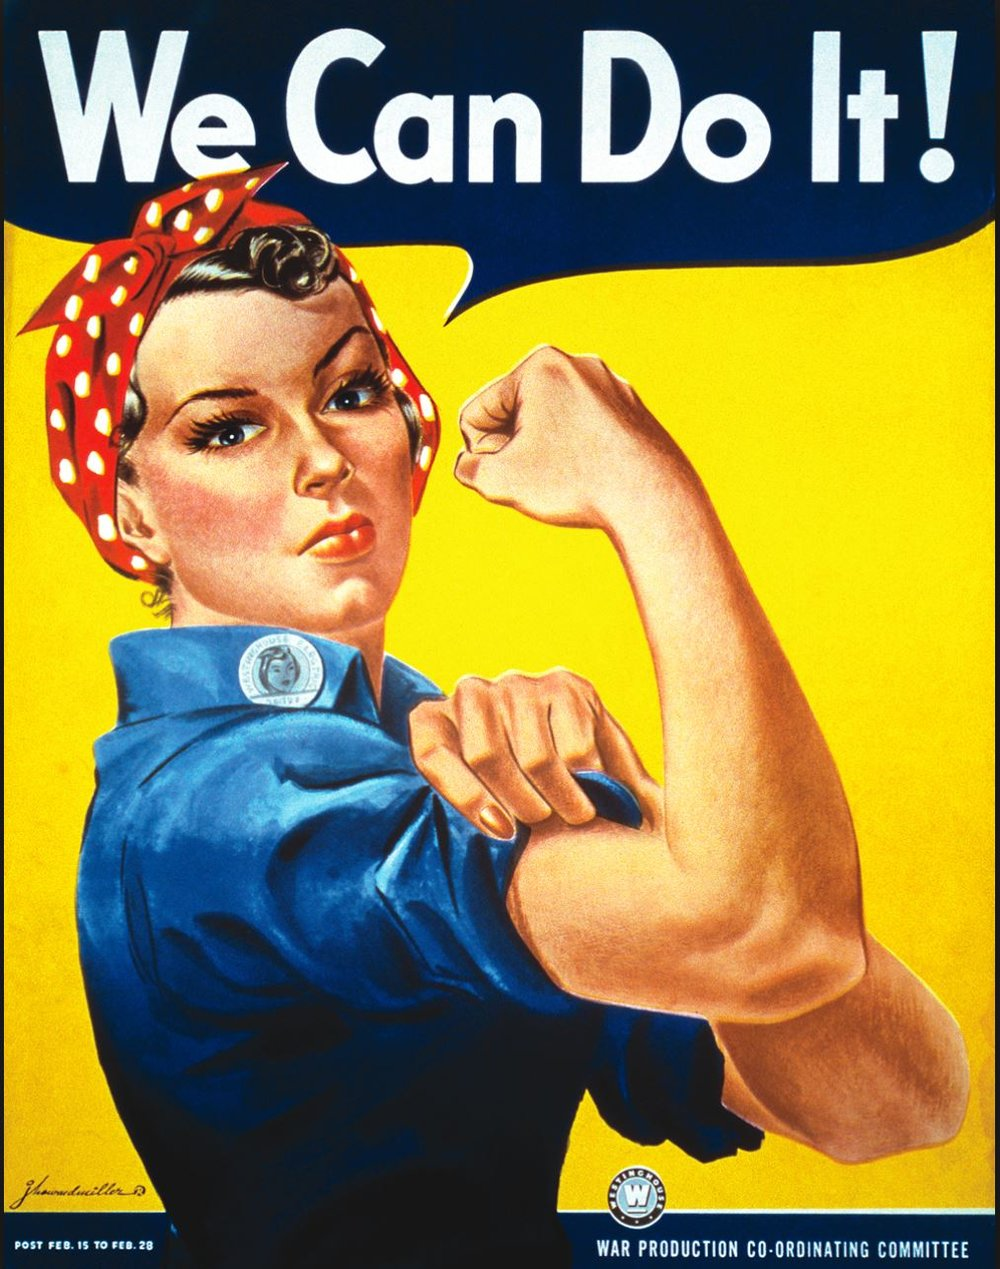 - ROSIE THE RIVETERRosie the Riveter, a cultural icon, represented the women who were called on to enter the workforce during World War II. As men enlisted as soldiers between 1940 – 1945, over 6 million American women enter the workforce. Women took on tough jobs which filled the gaping holes left in the industrial workforce. The government aimed at recruiting women during this period and the most iconic image of working women during the war represented all women and became the symbol of female empowerment.